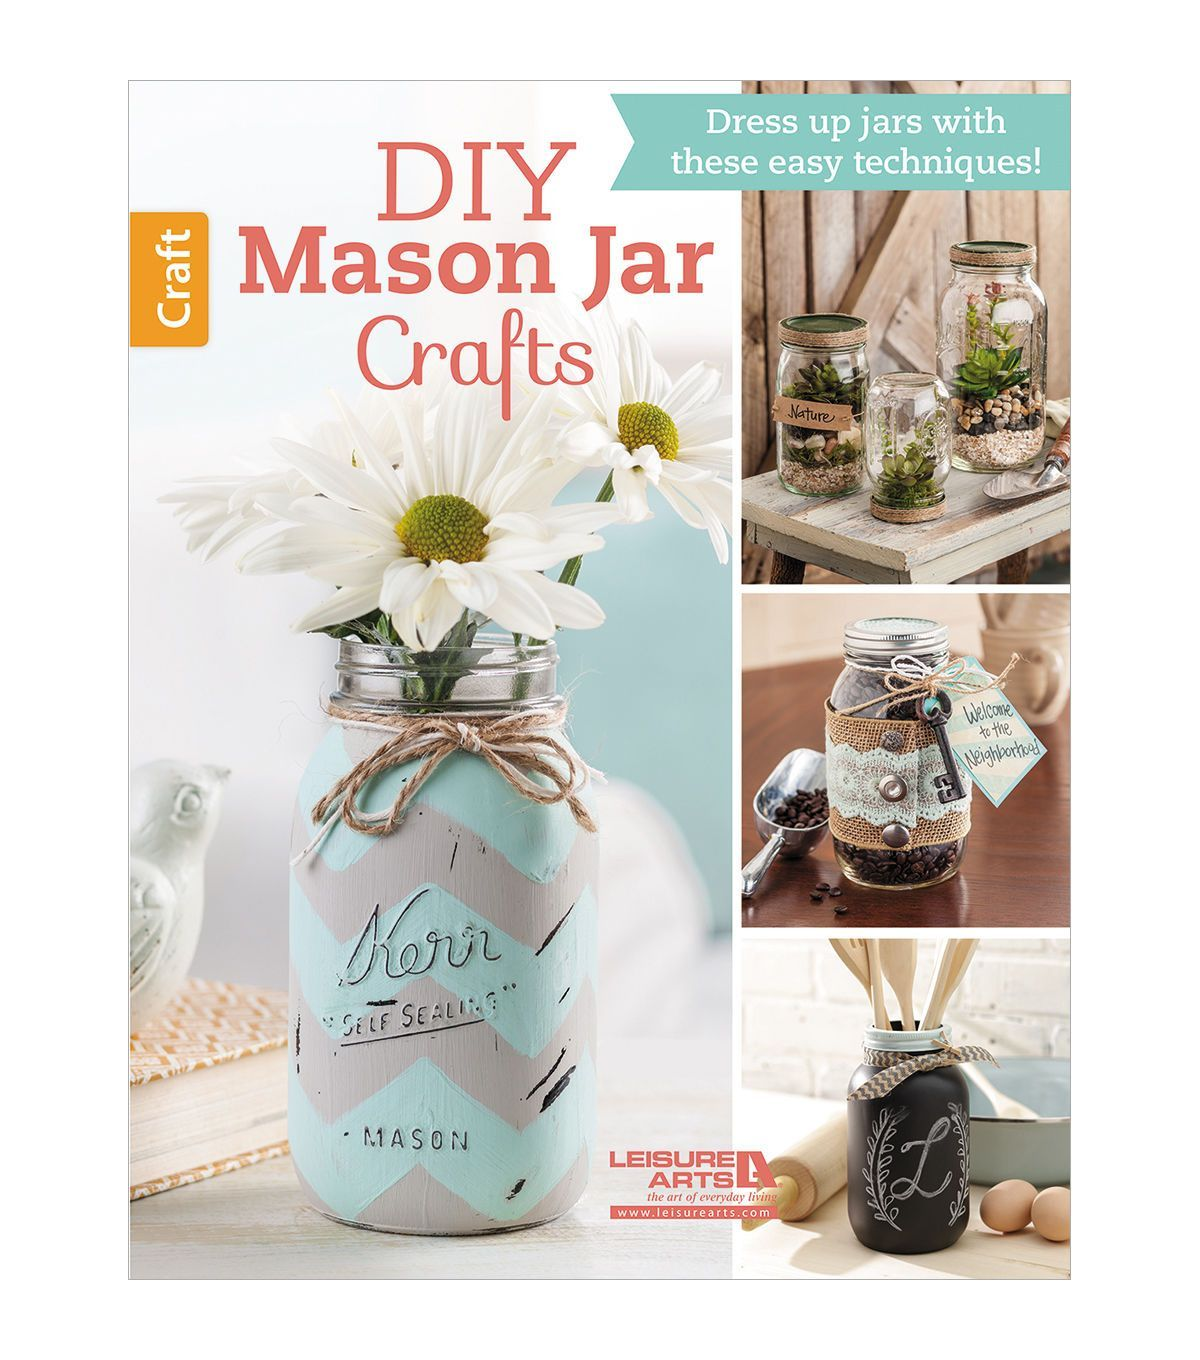 Diy mason jar crafts book crafts hobbies books for Book craft ideas